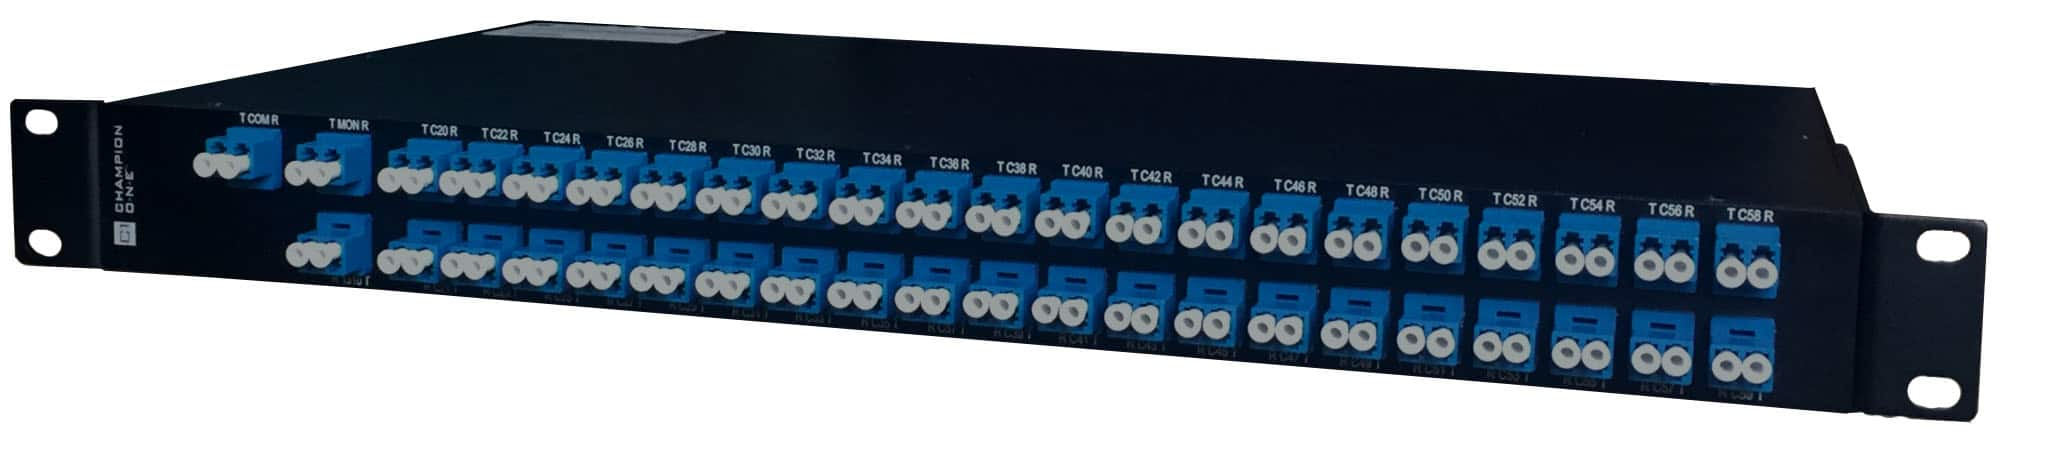 80 Channel/40 Service Single Fiber DWDM Mux/Demux ITU ch. 20-59.5 – WEST